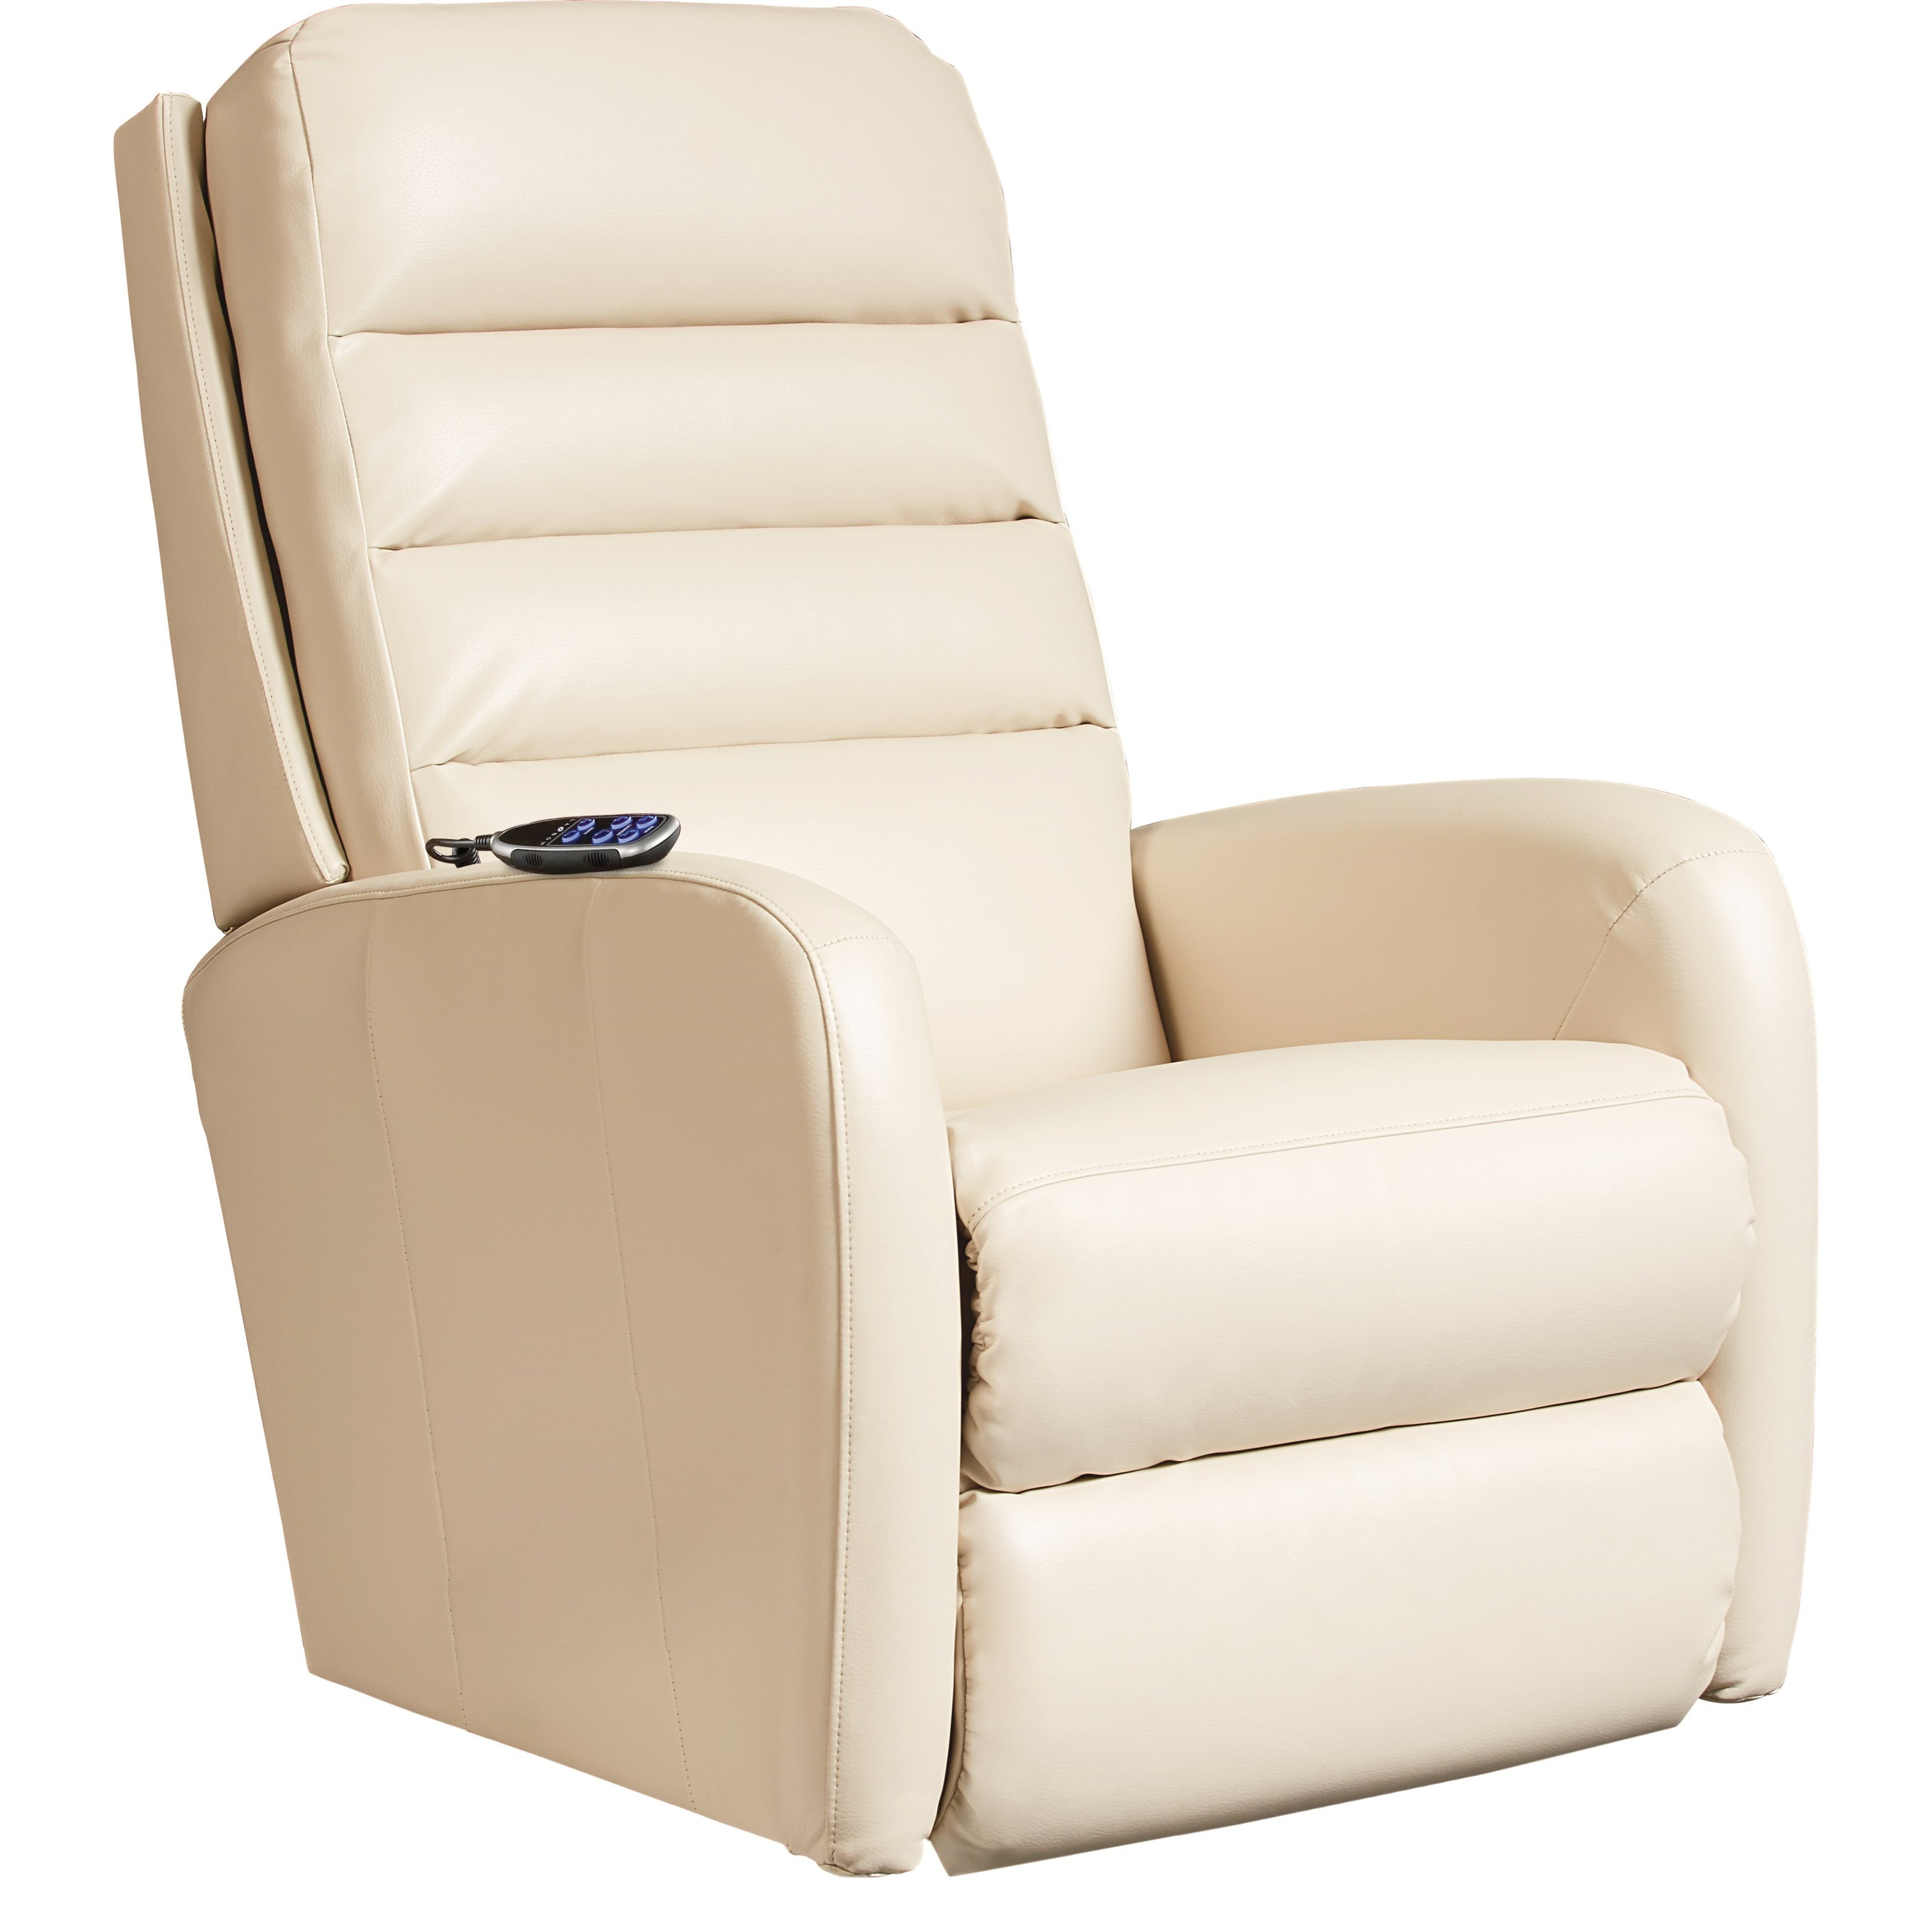 Forum Power Rocking Recliner w/ Headrest & Lumbar by La-Z-Boy at Novello Home Furnishings